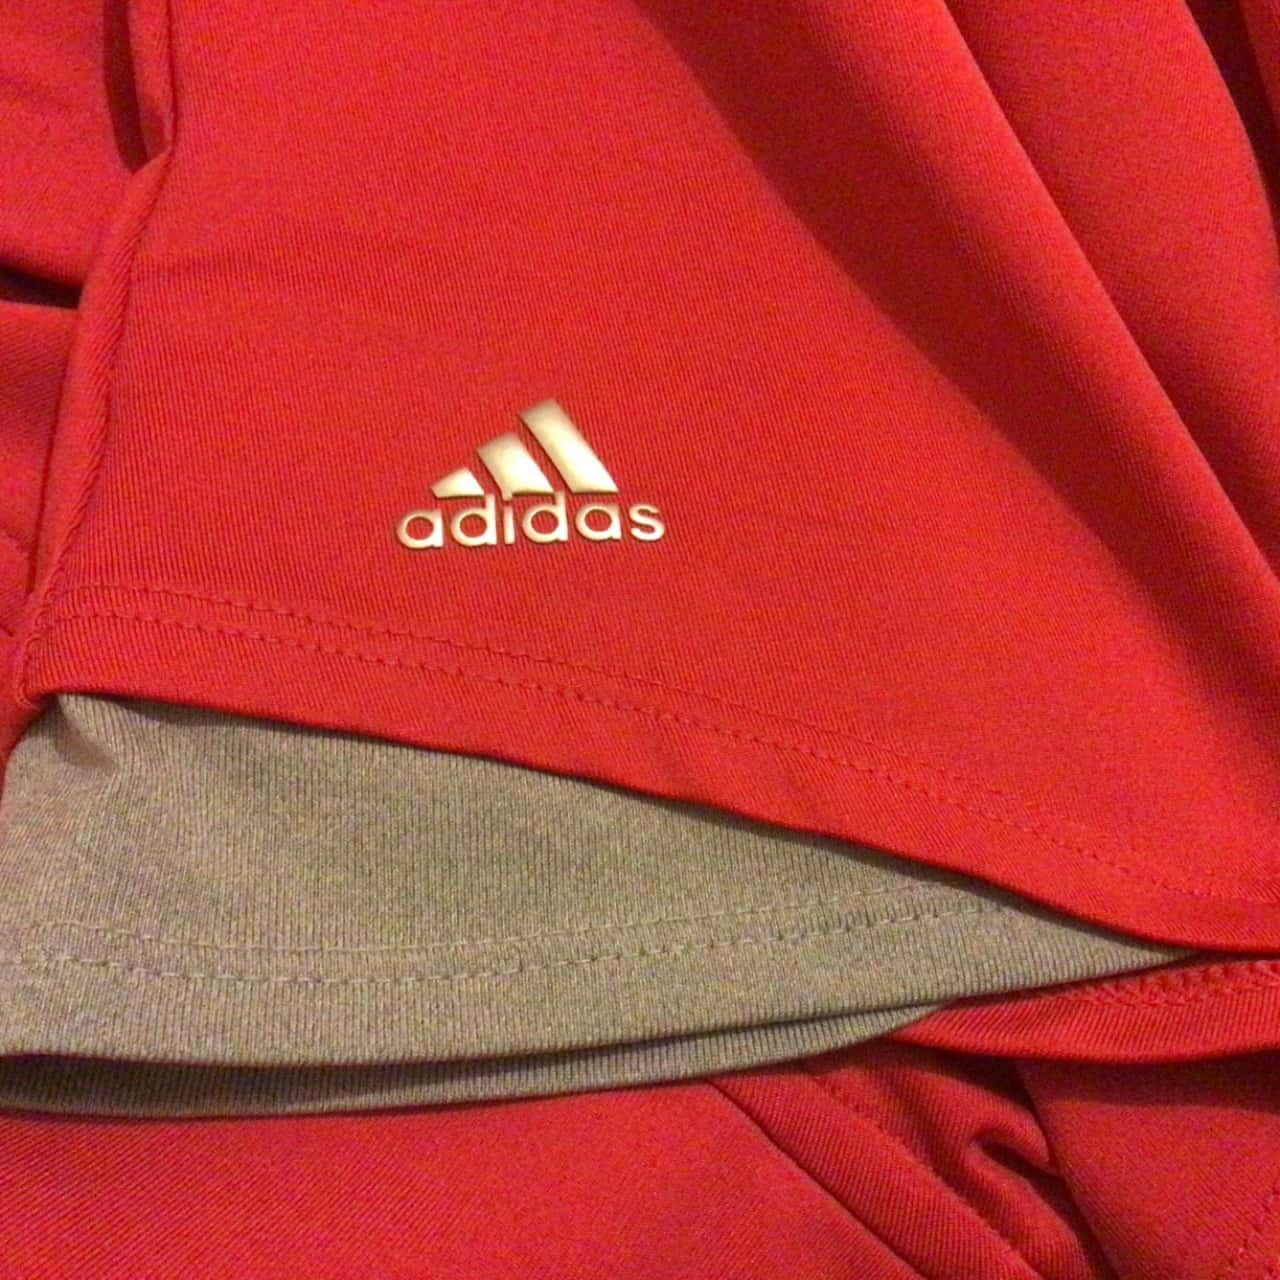 Womens  ADIDAS T SHIRT Size 12/14 Grey/Red